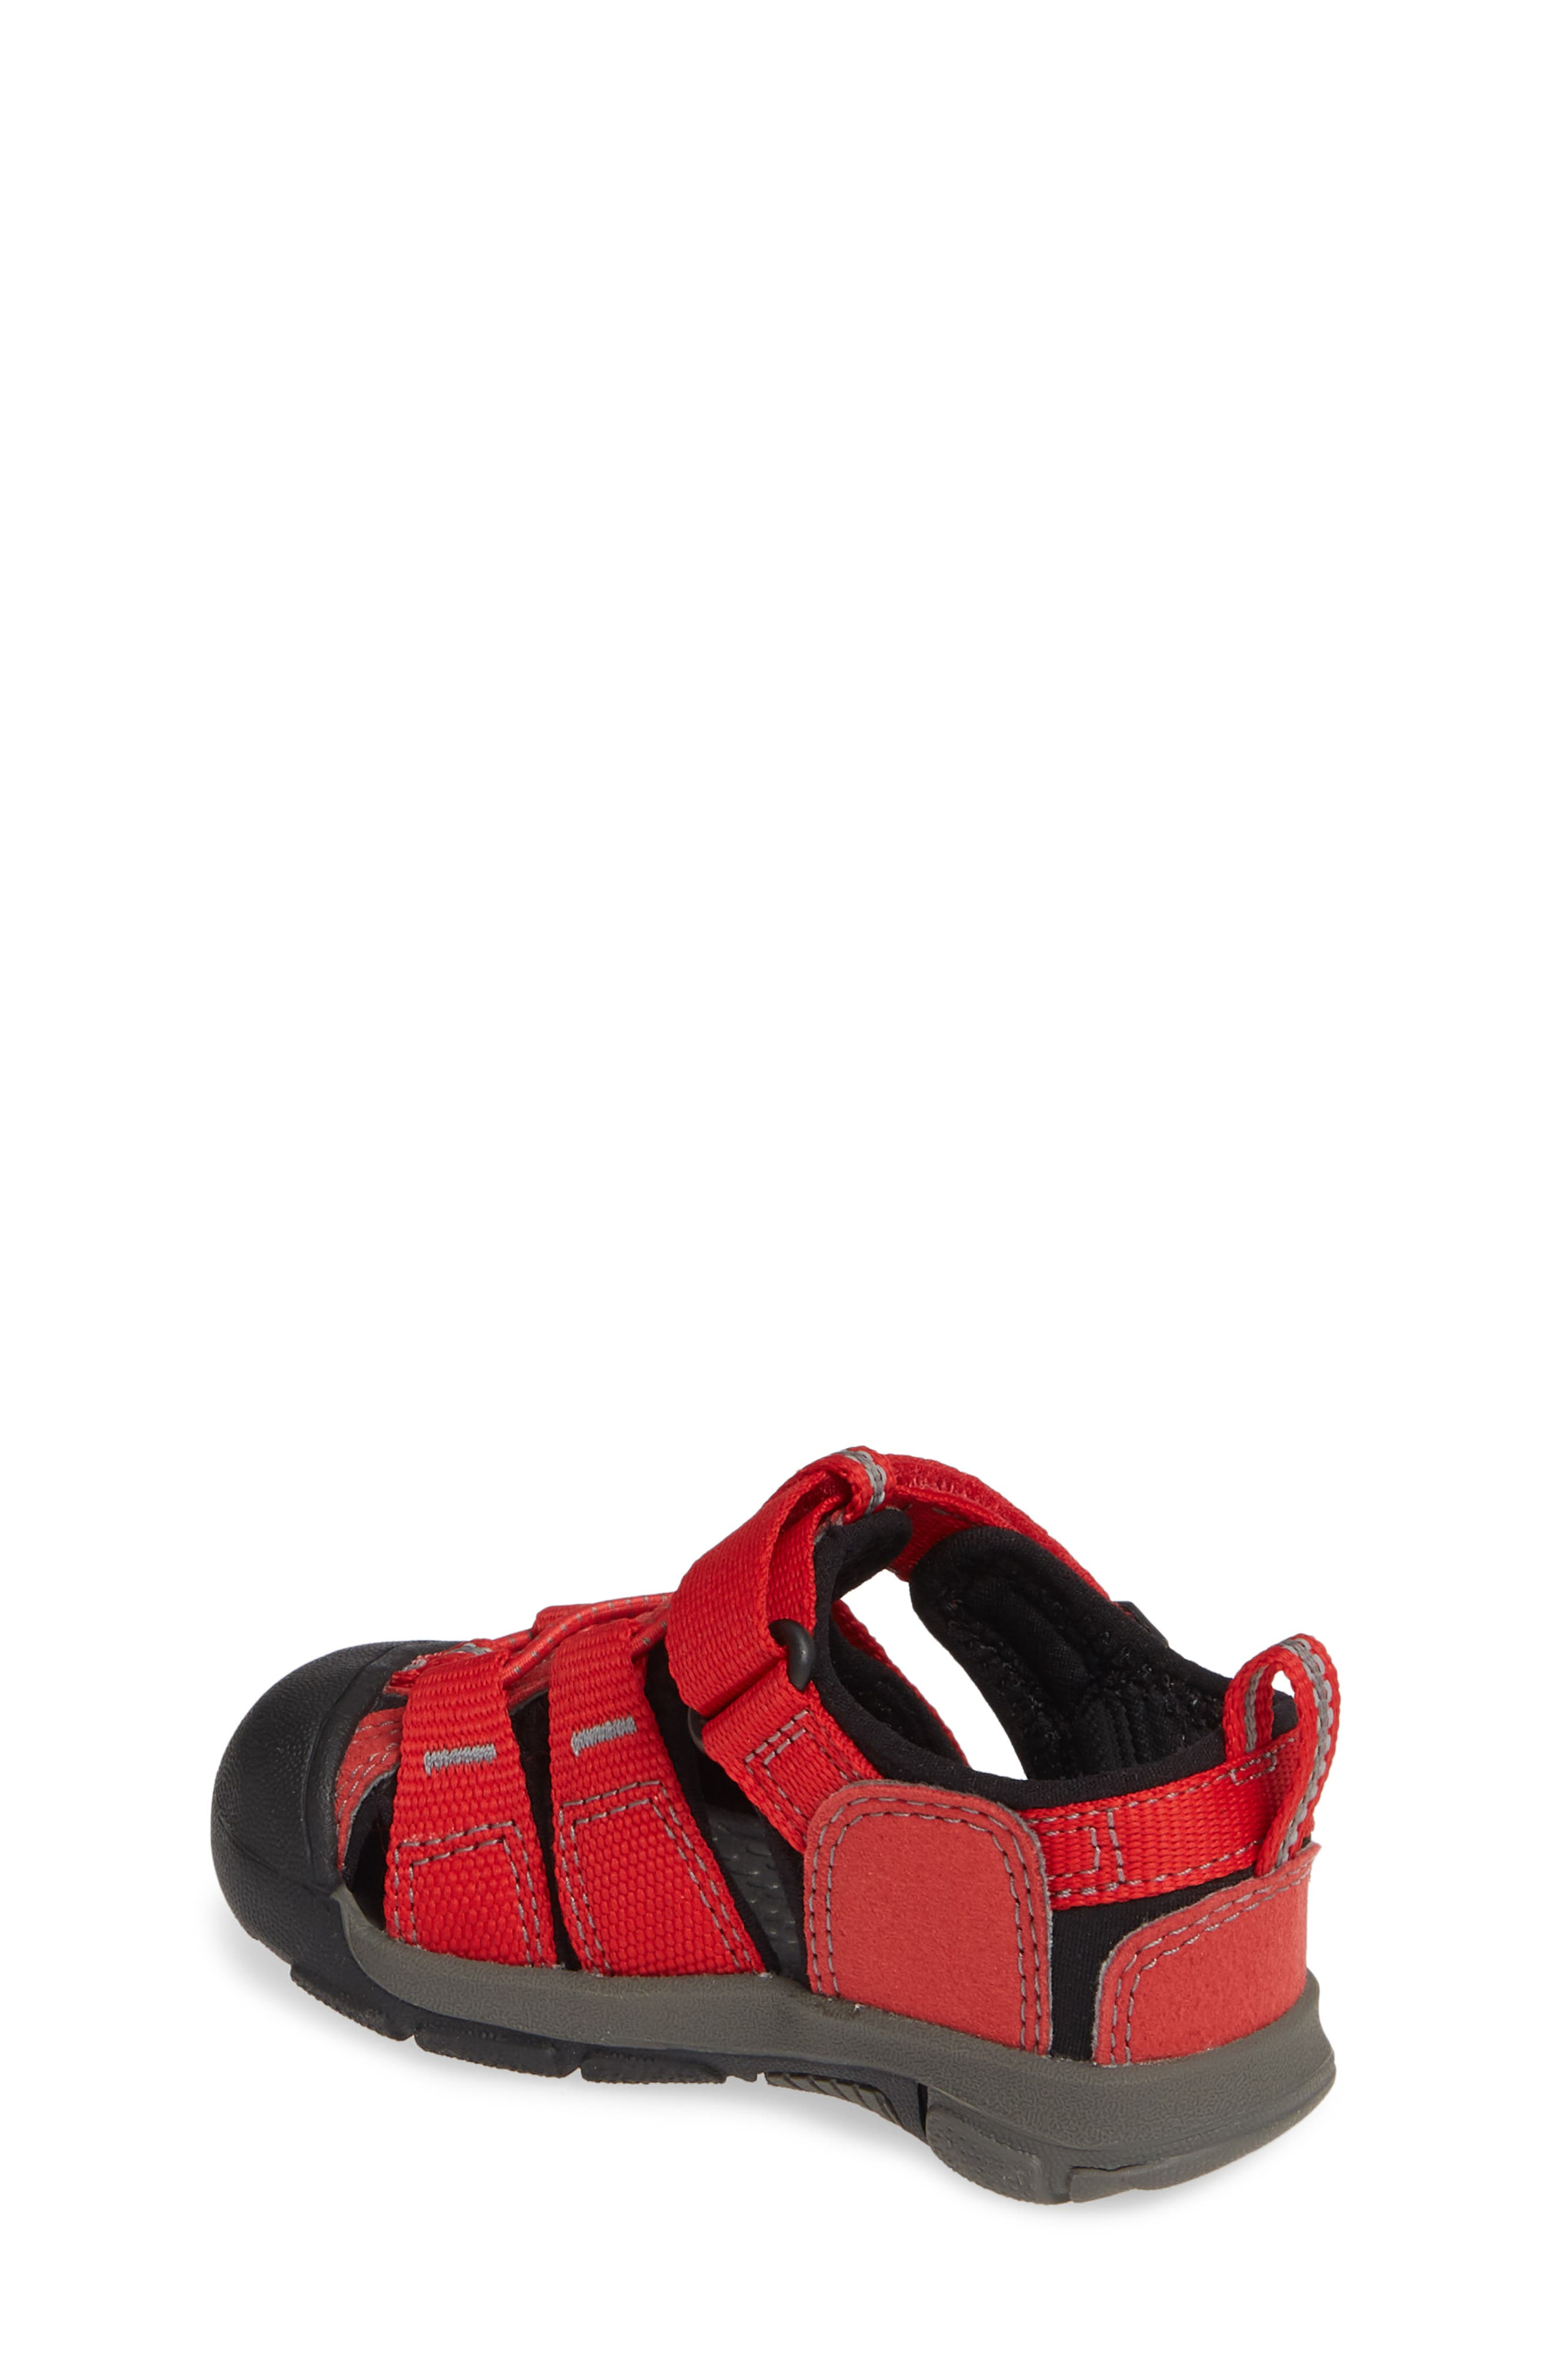 ,                             'Newport H2' Water Friendly Sandal,                             Alternate thumbnail 132, color,                             602